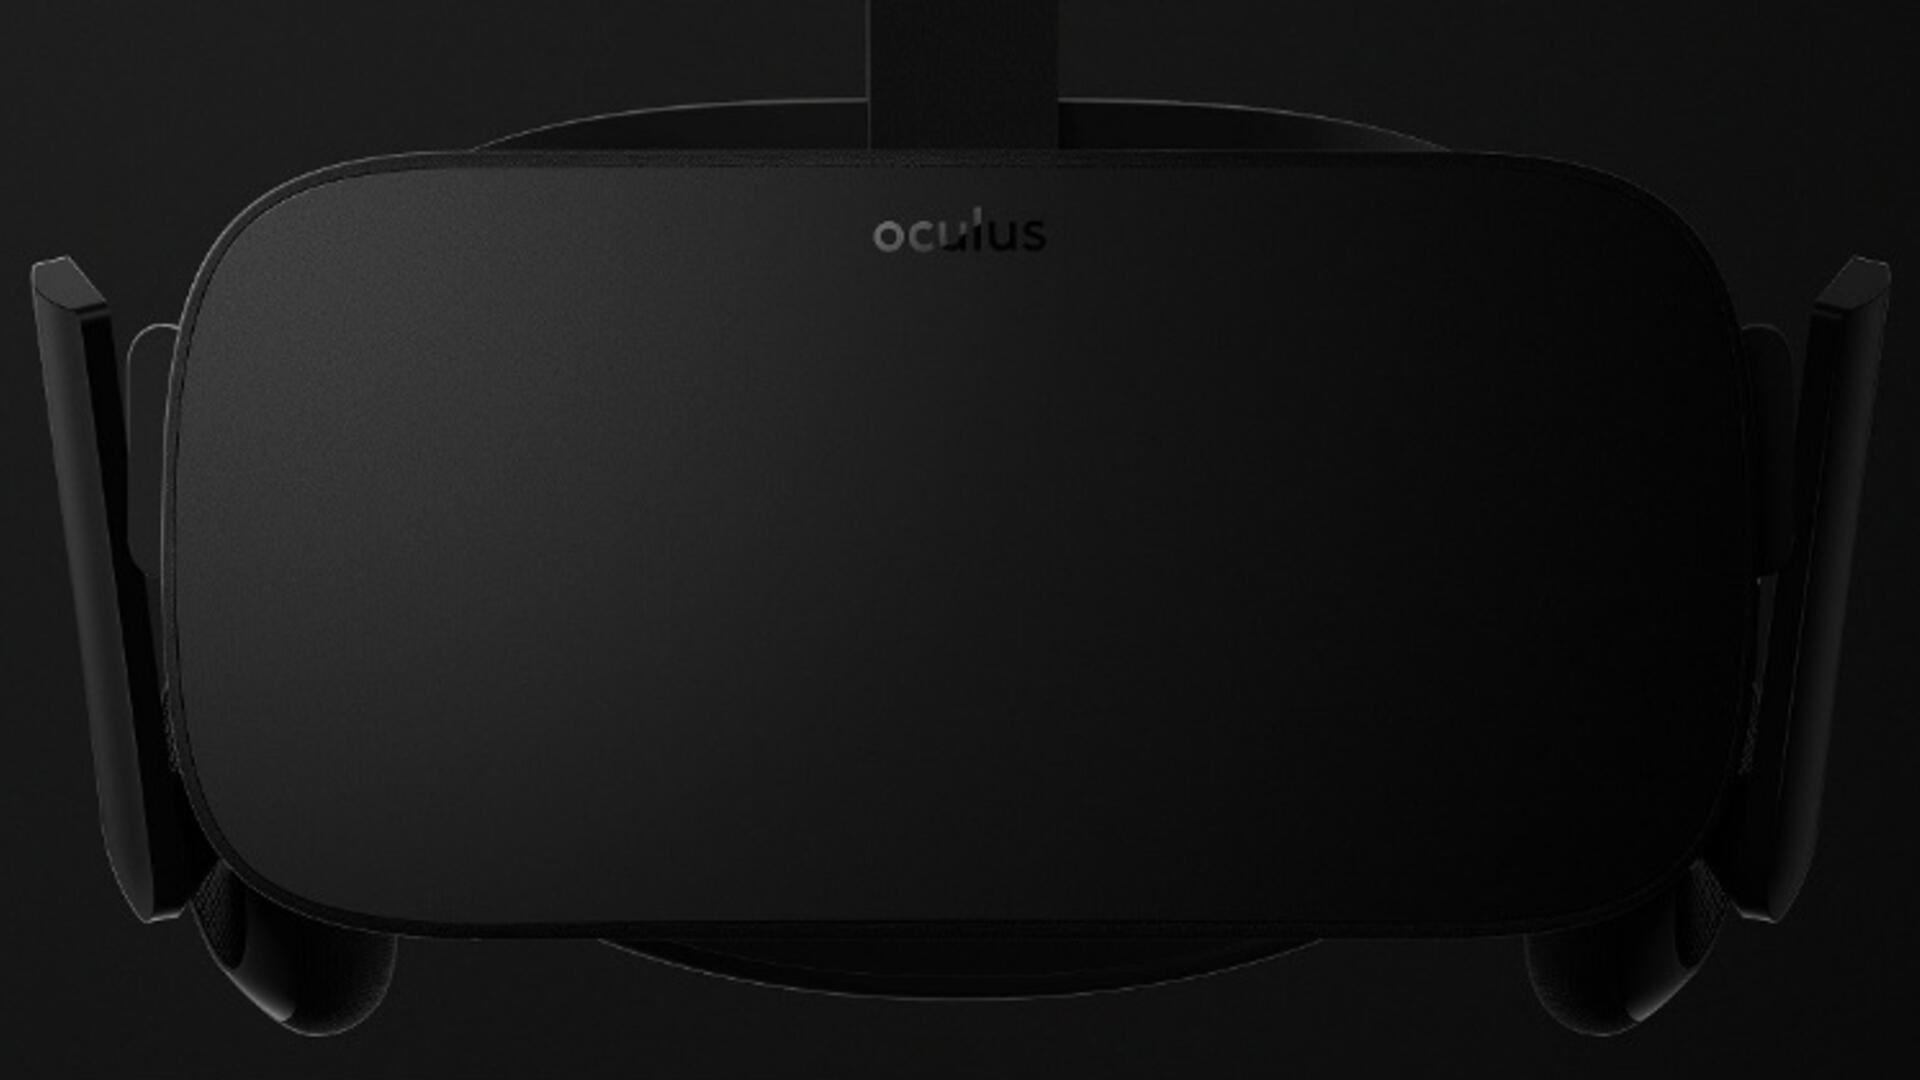 Oculus Rift is $599, Good Enough for Early Adopters